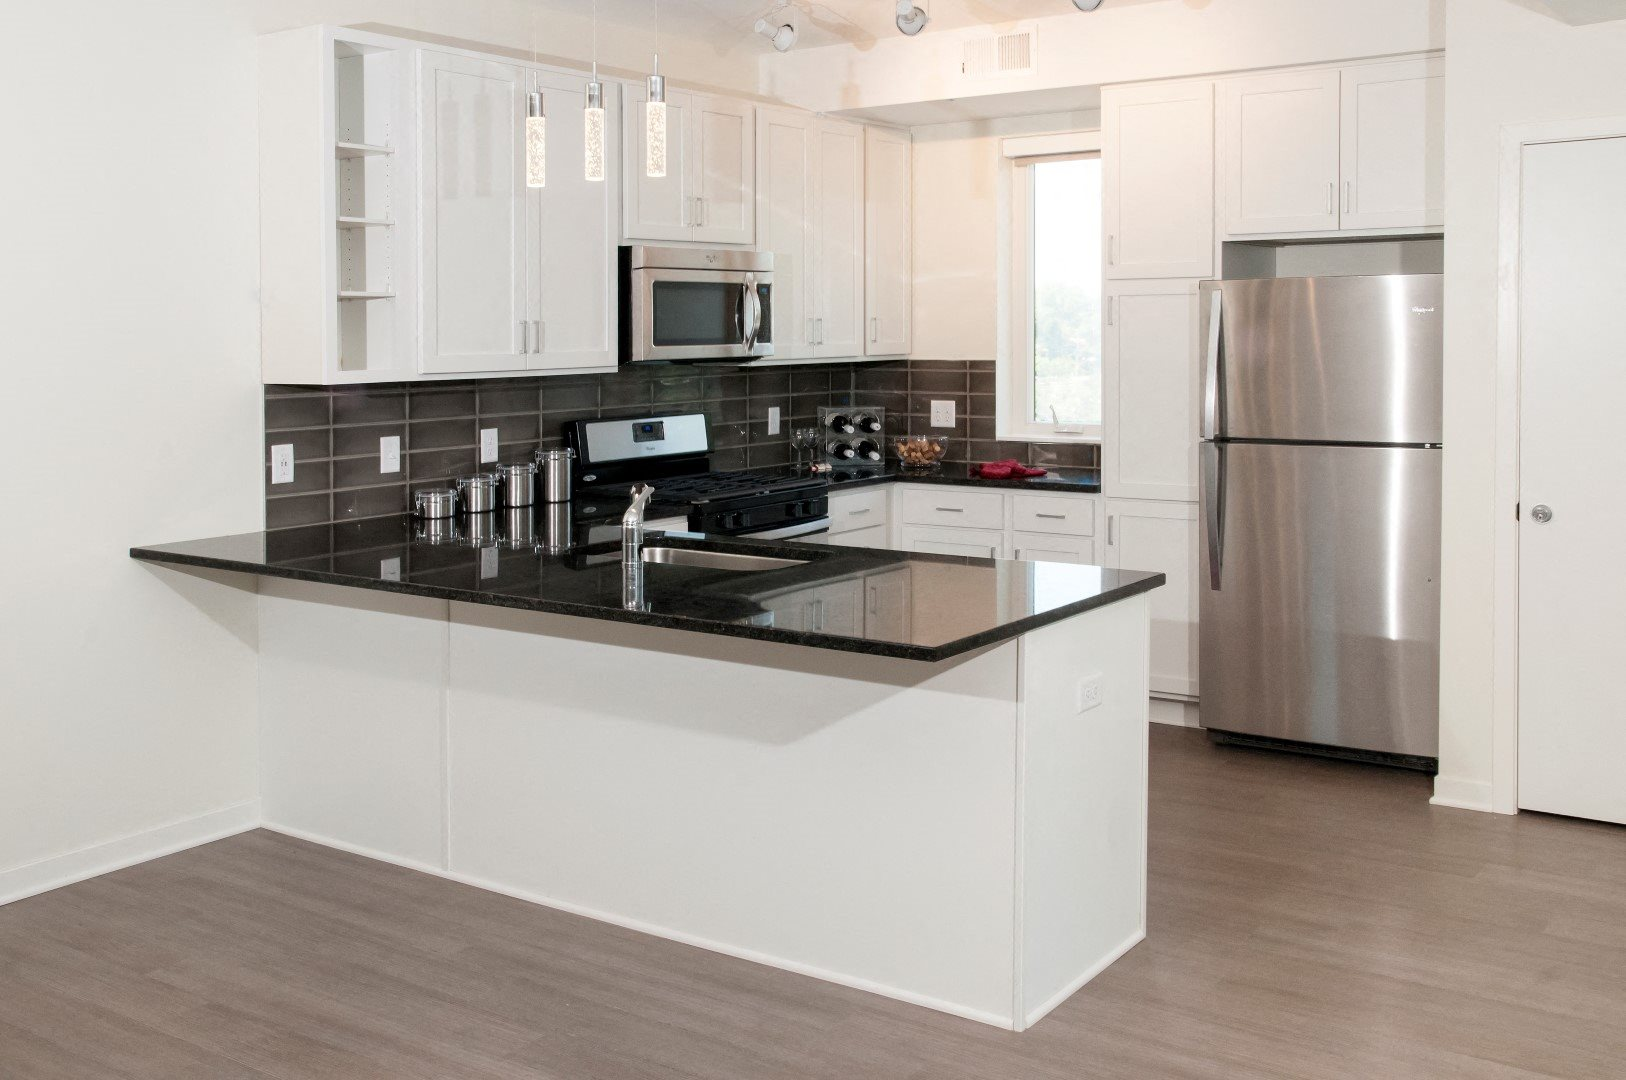 Elements of Linden Hills | Apartments in Minneapolis, MN